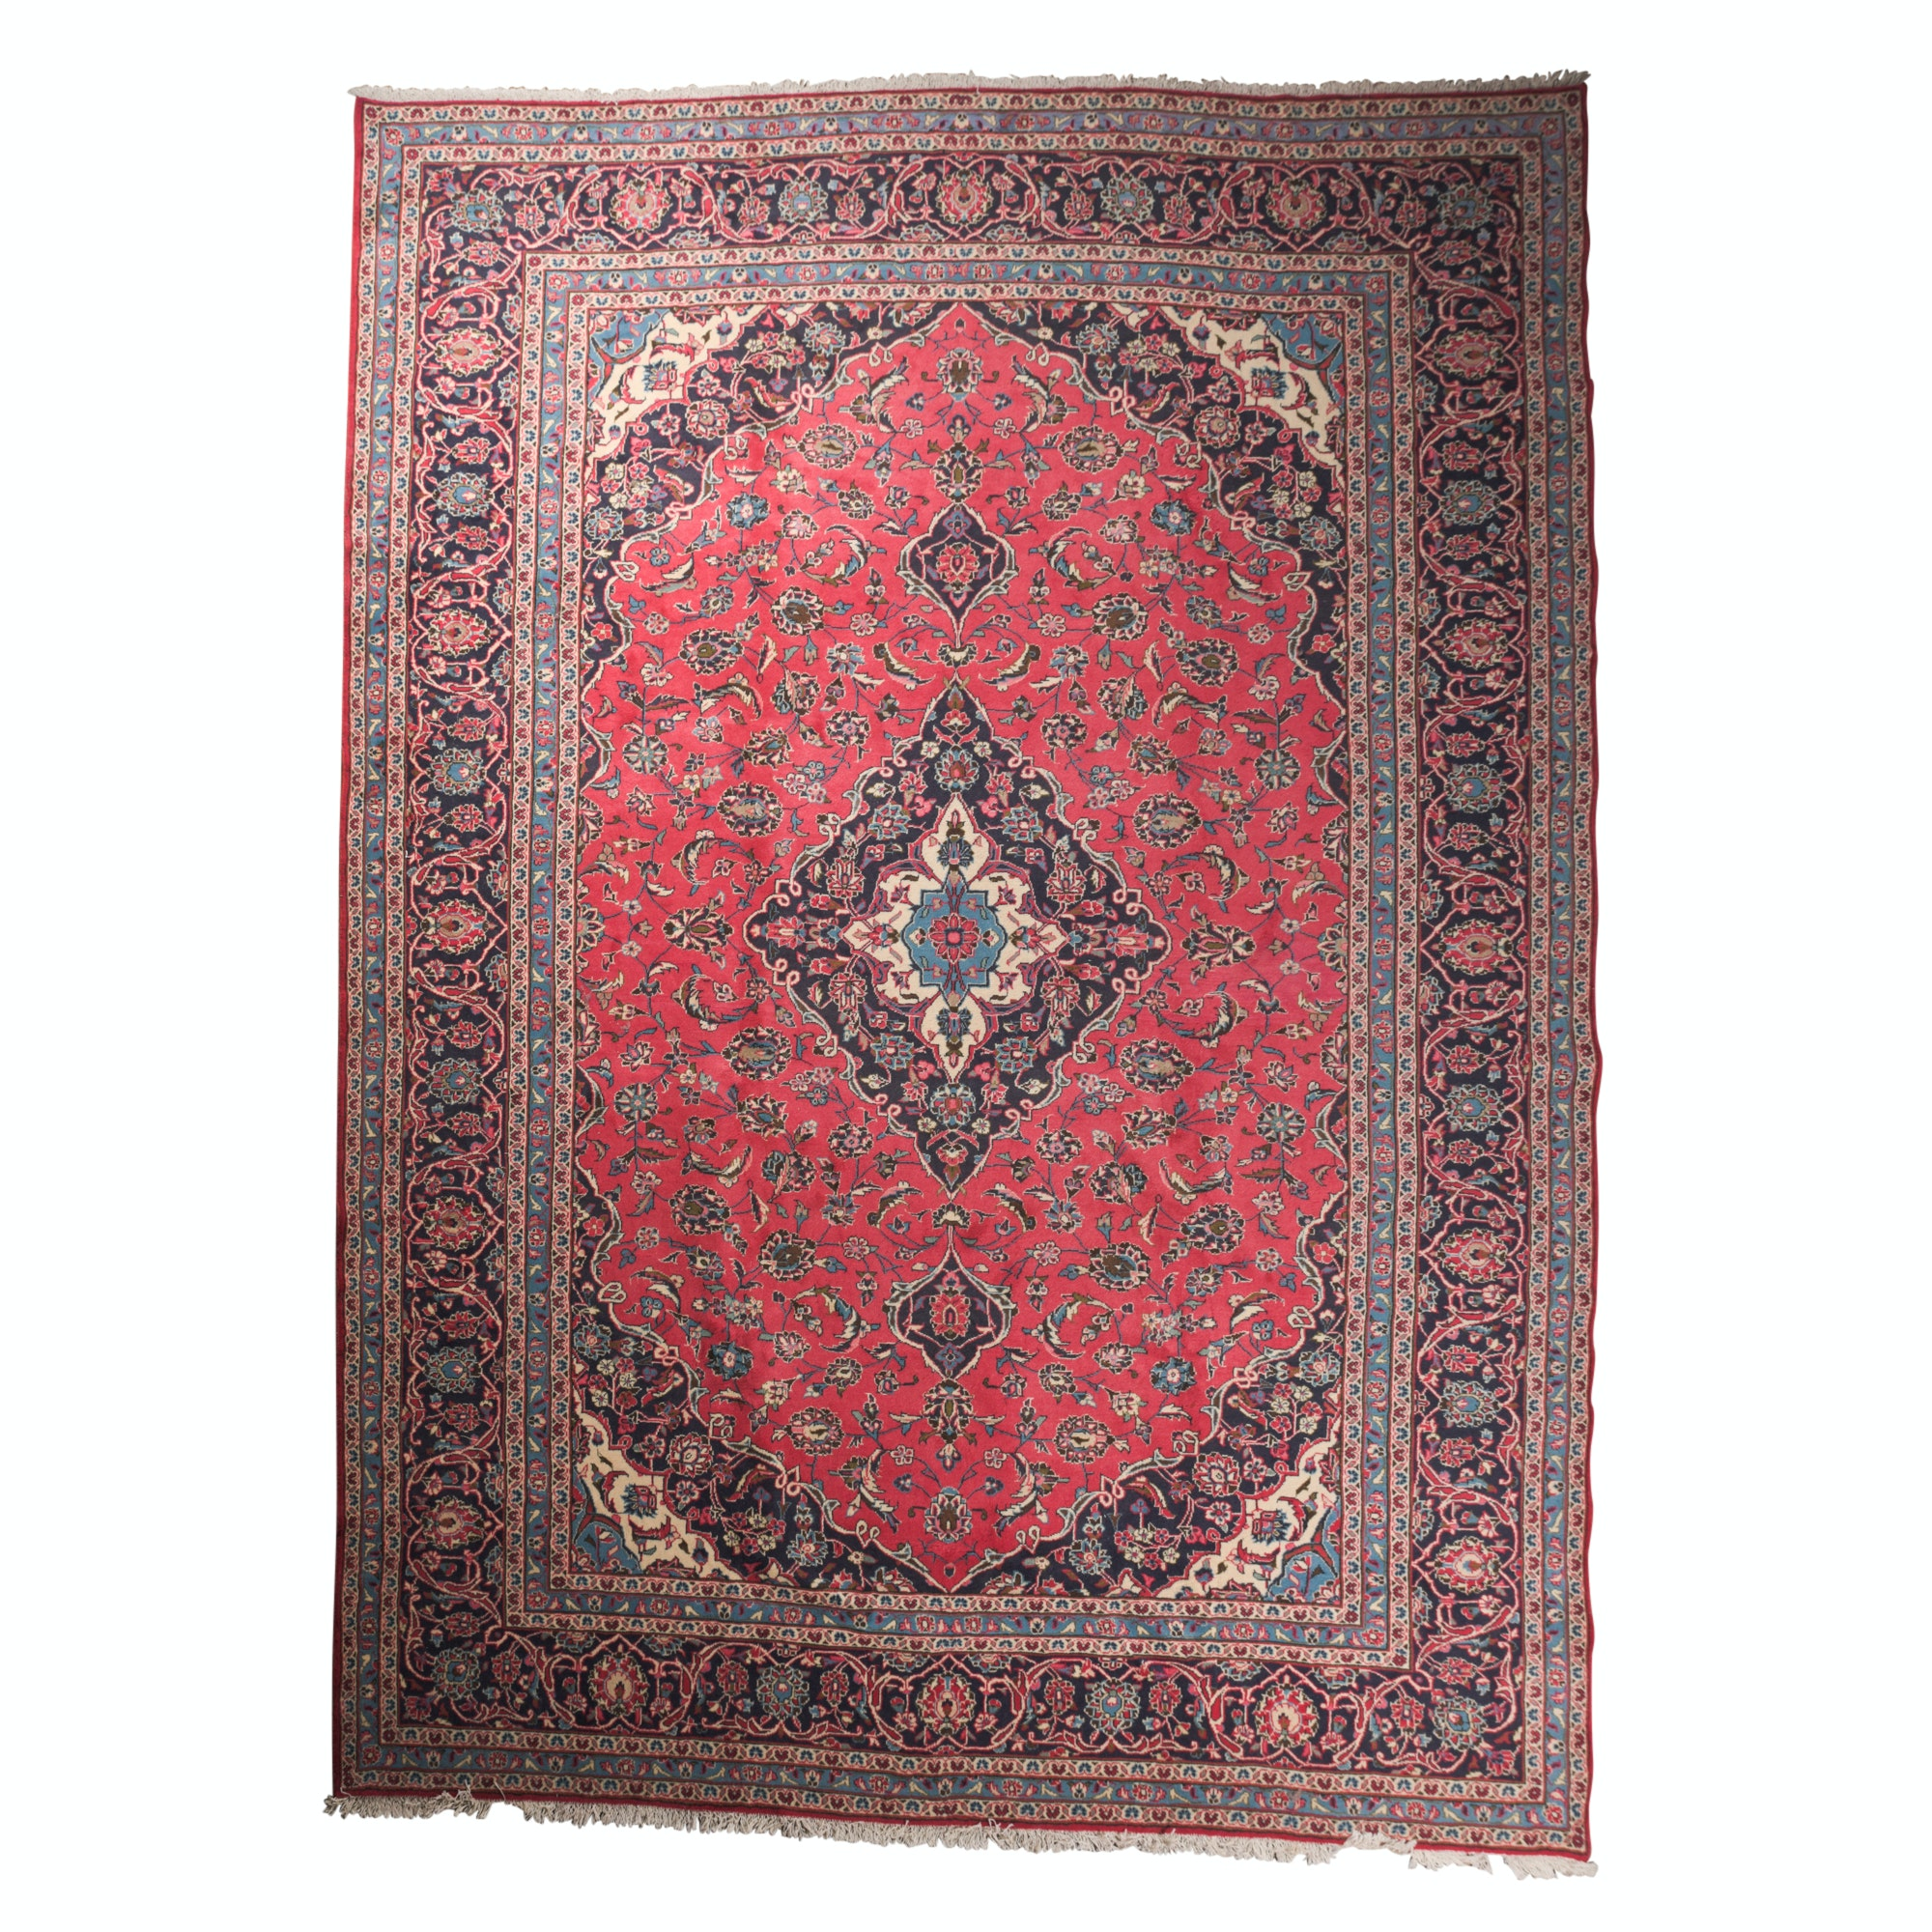 Hand-Knotted Persian Kerman Wool Room Sized Rug